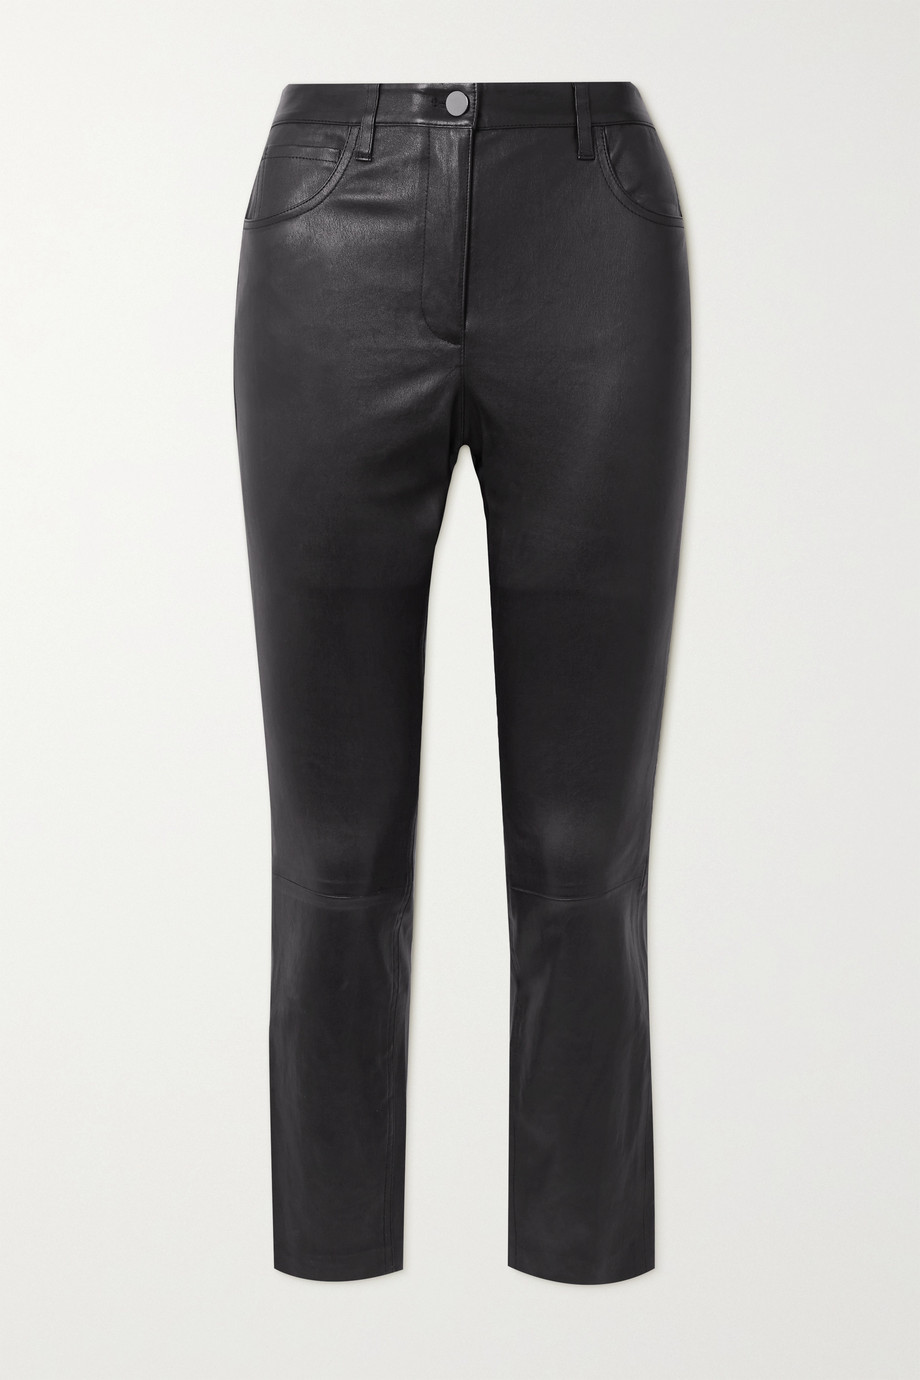 Theory Leather skinny pants